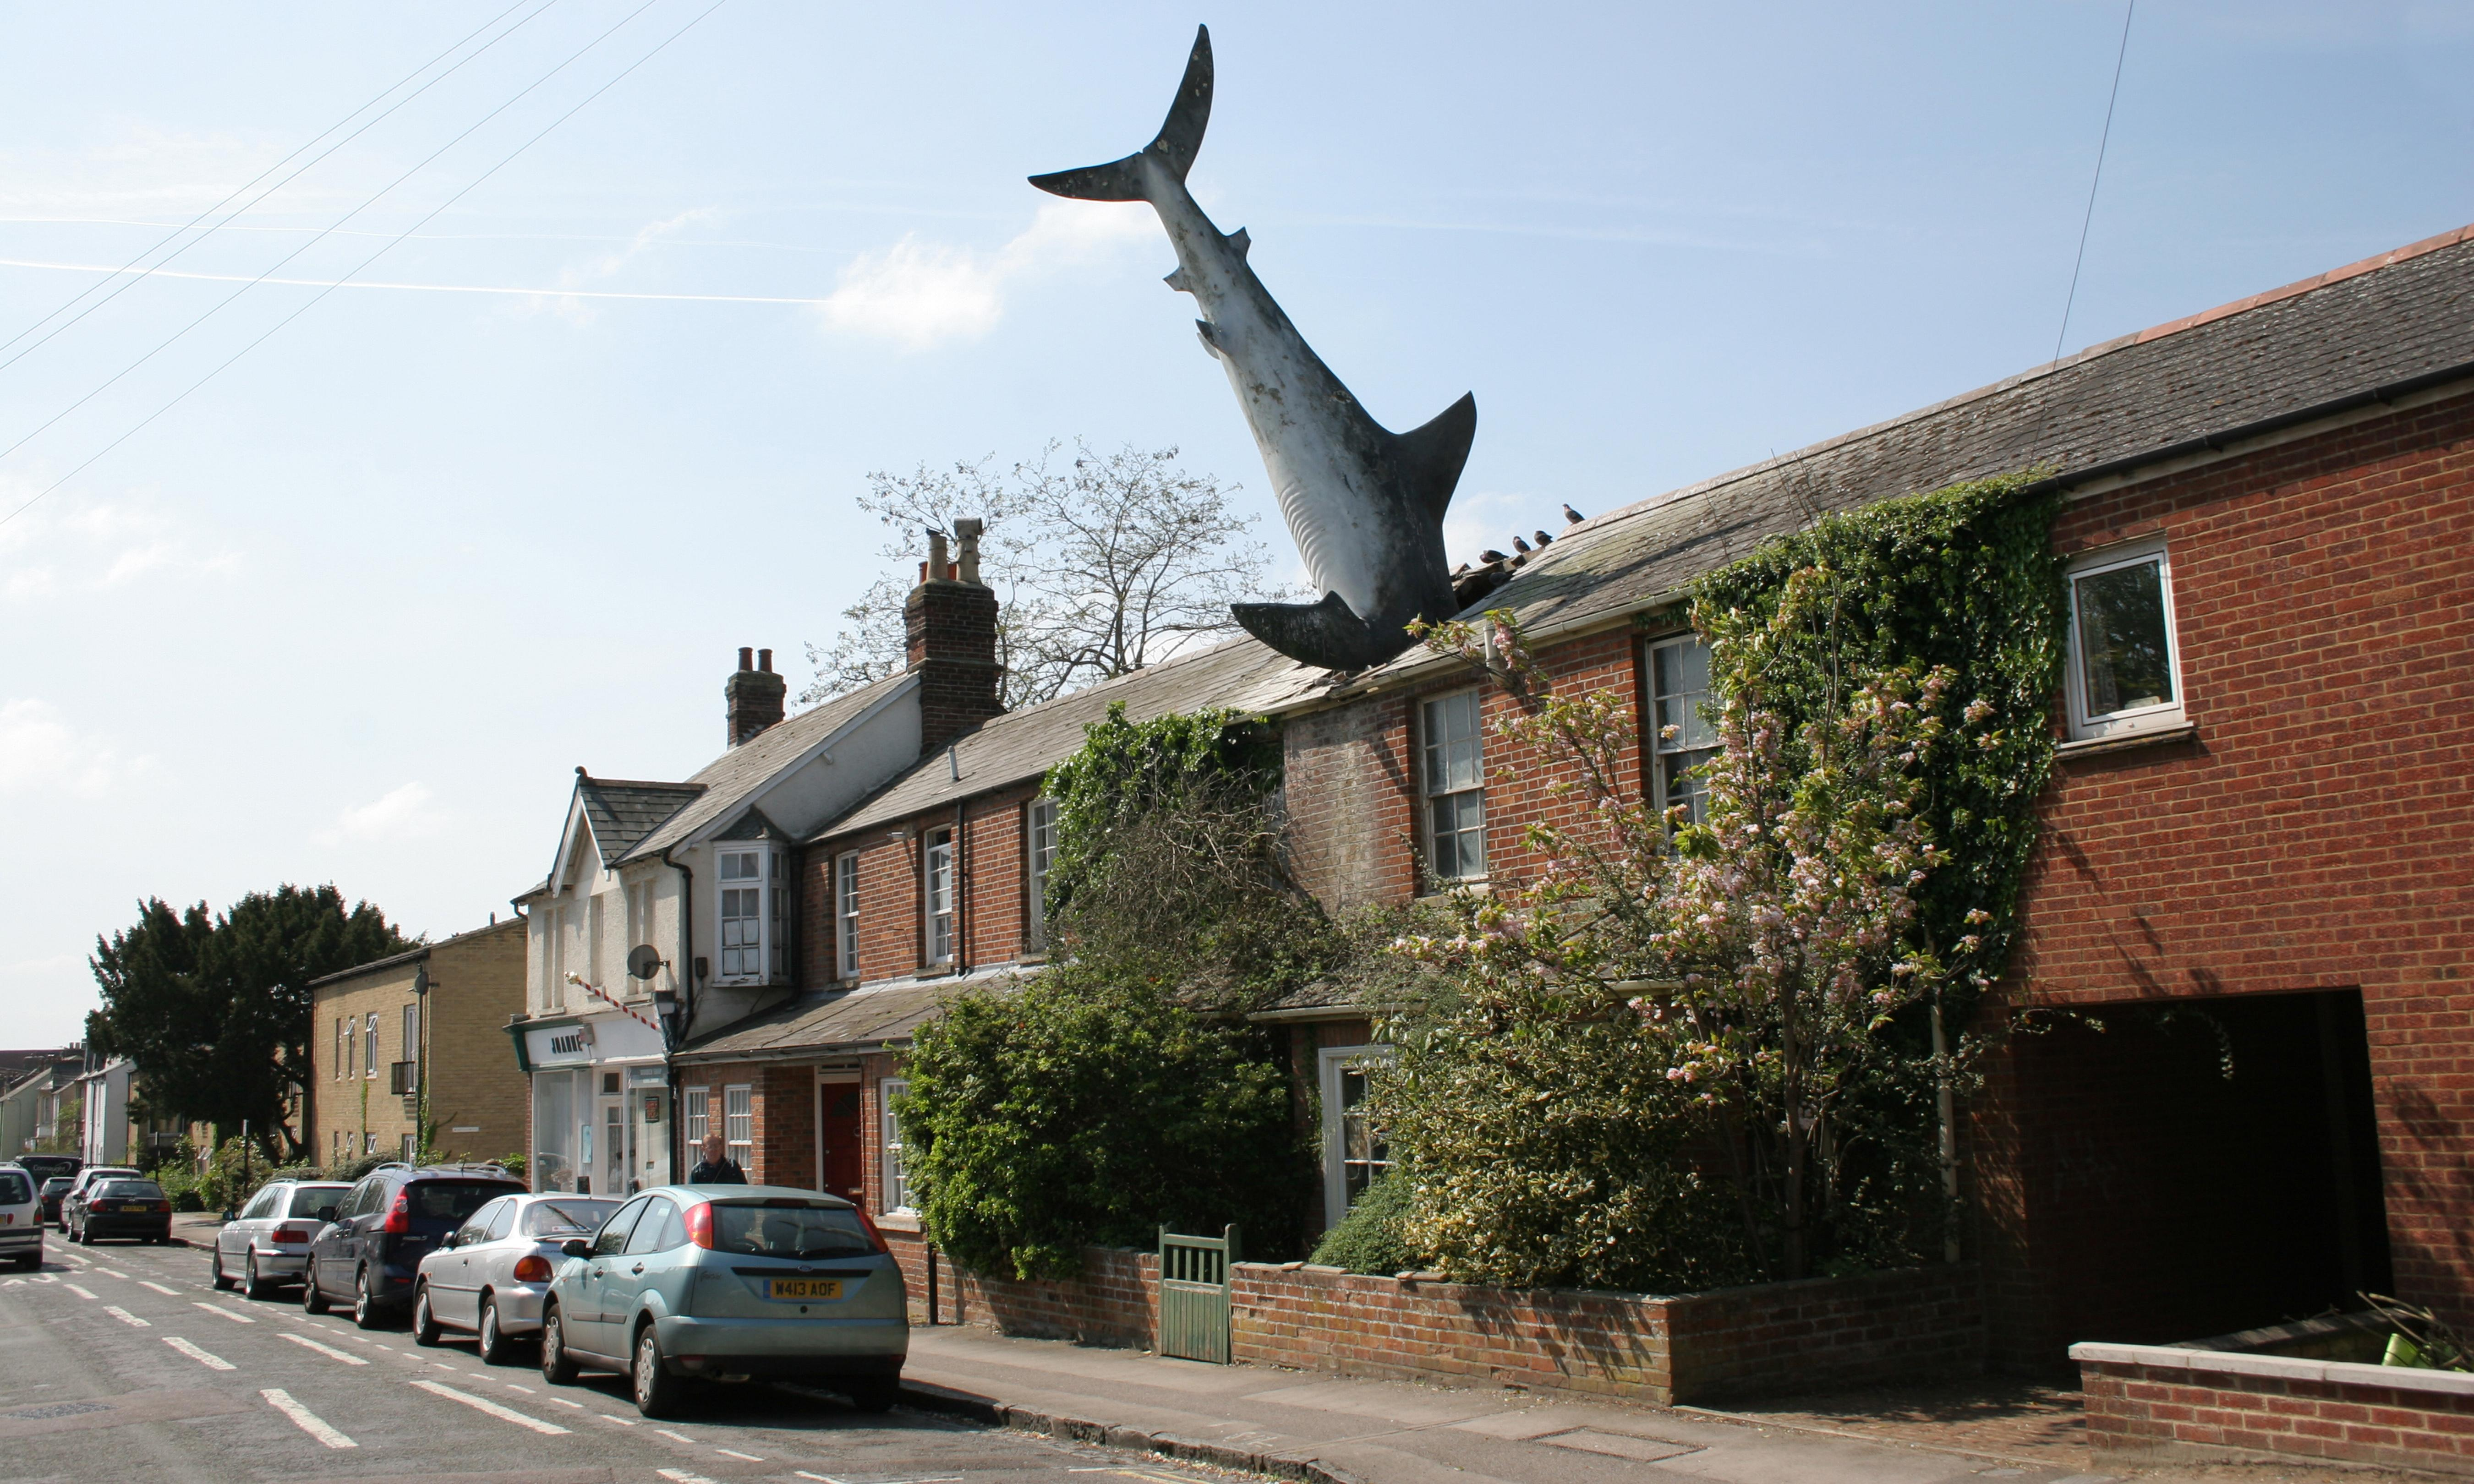 'It went in beautifully as the postman was passing': the story of the Headington Shark